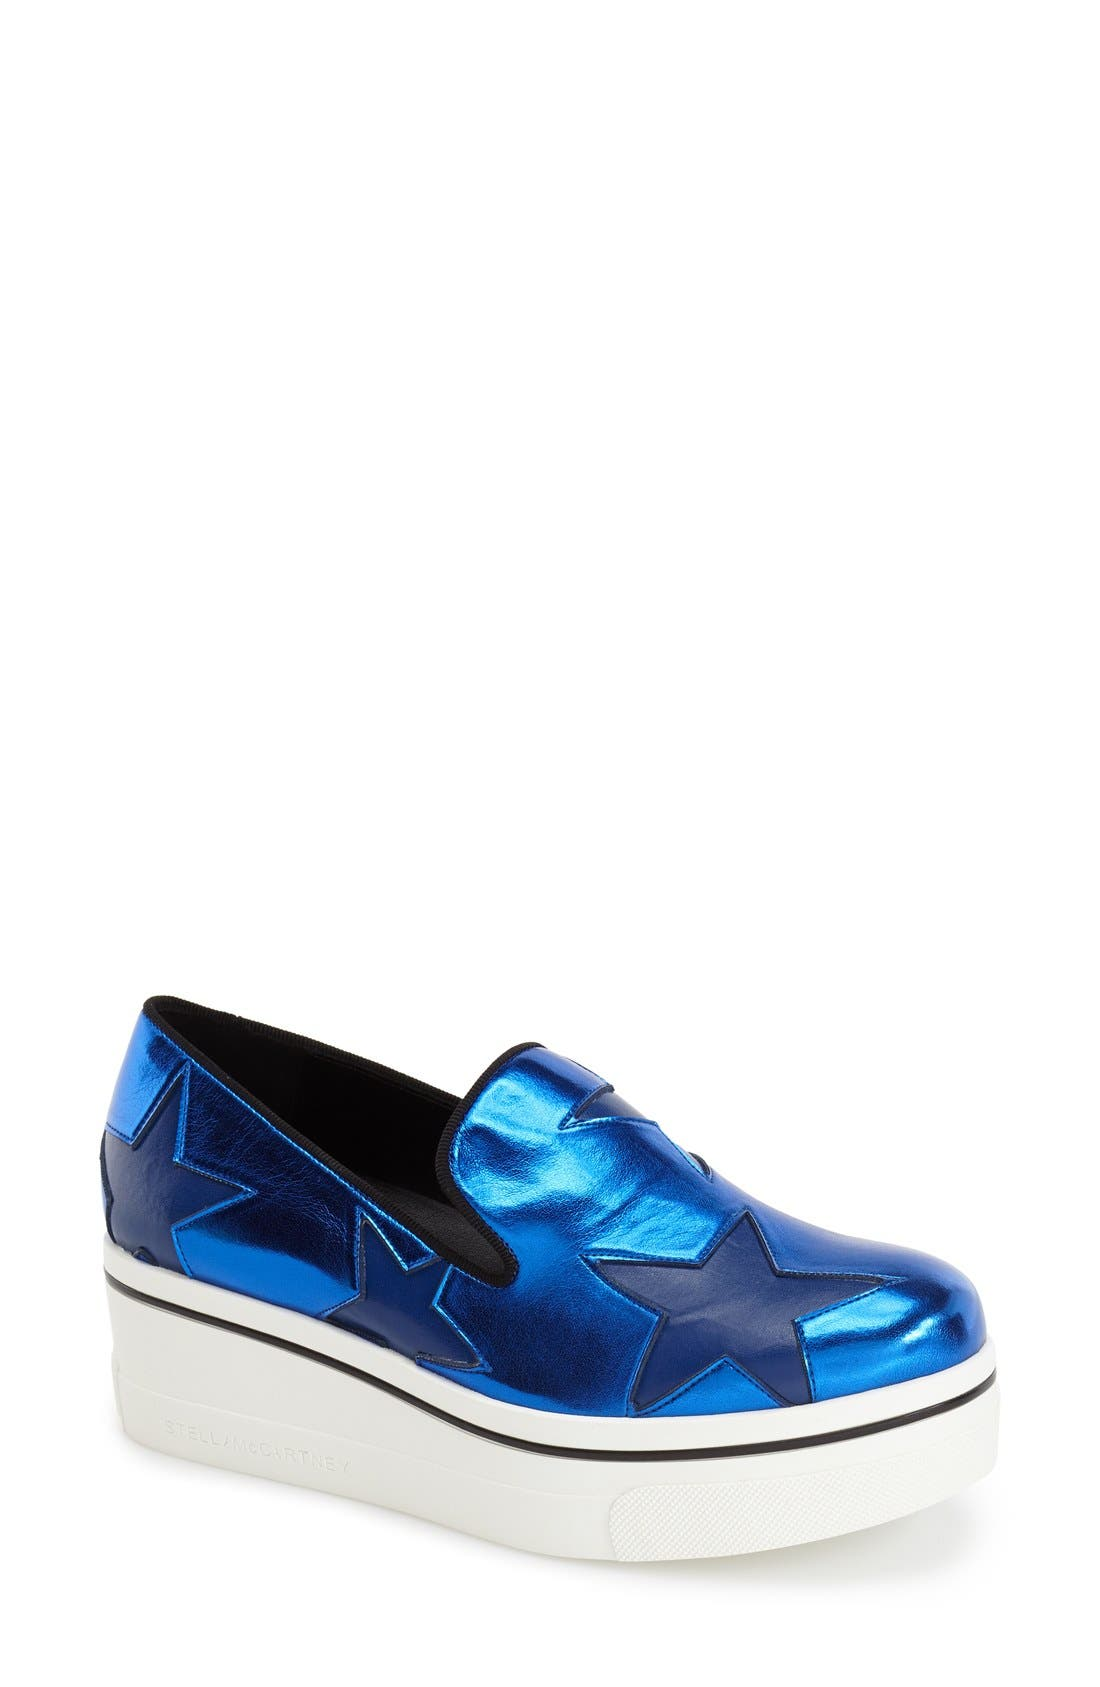 Main Image - Stella McCartney 'Star' Platform Loafer (Women)